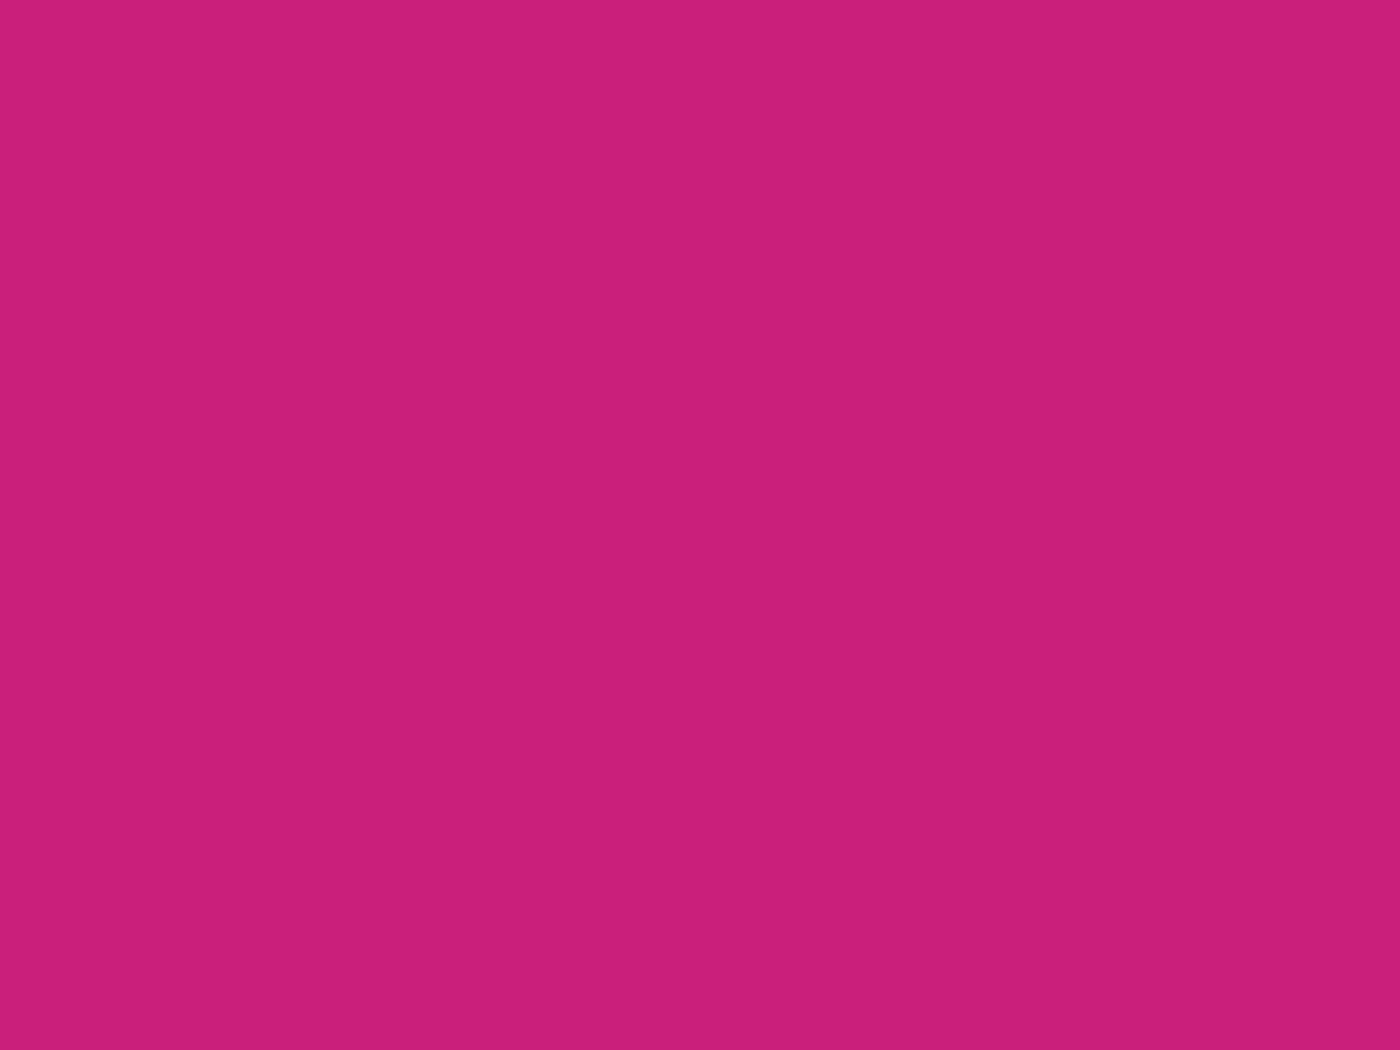 1400x1050 Magenta Dye Solid Color Background